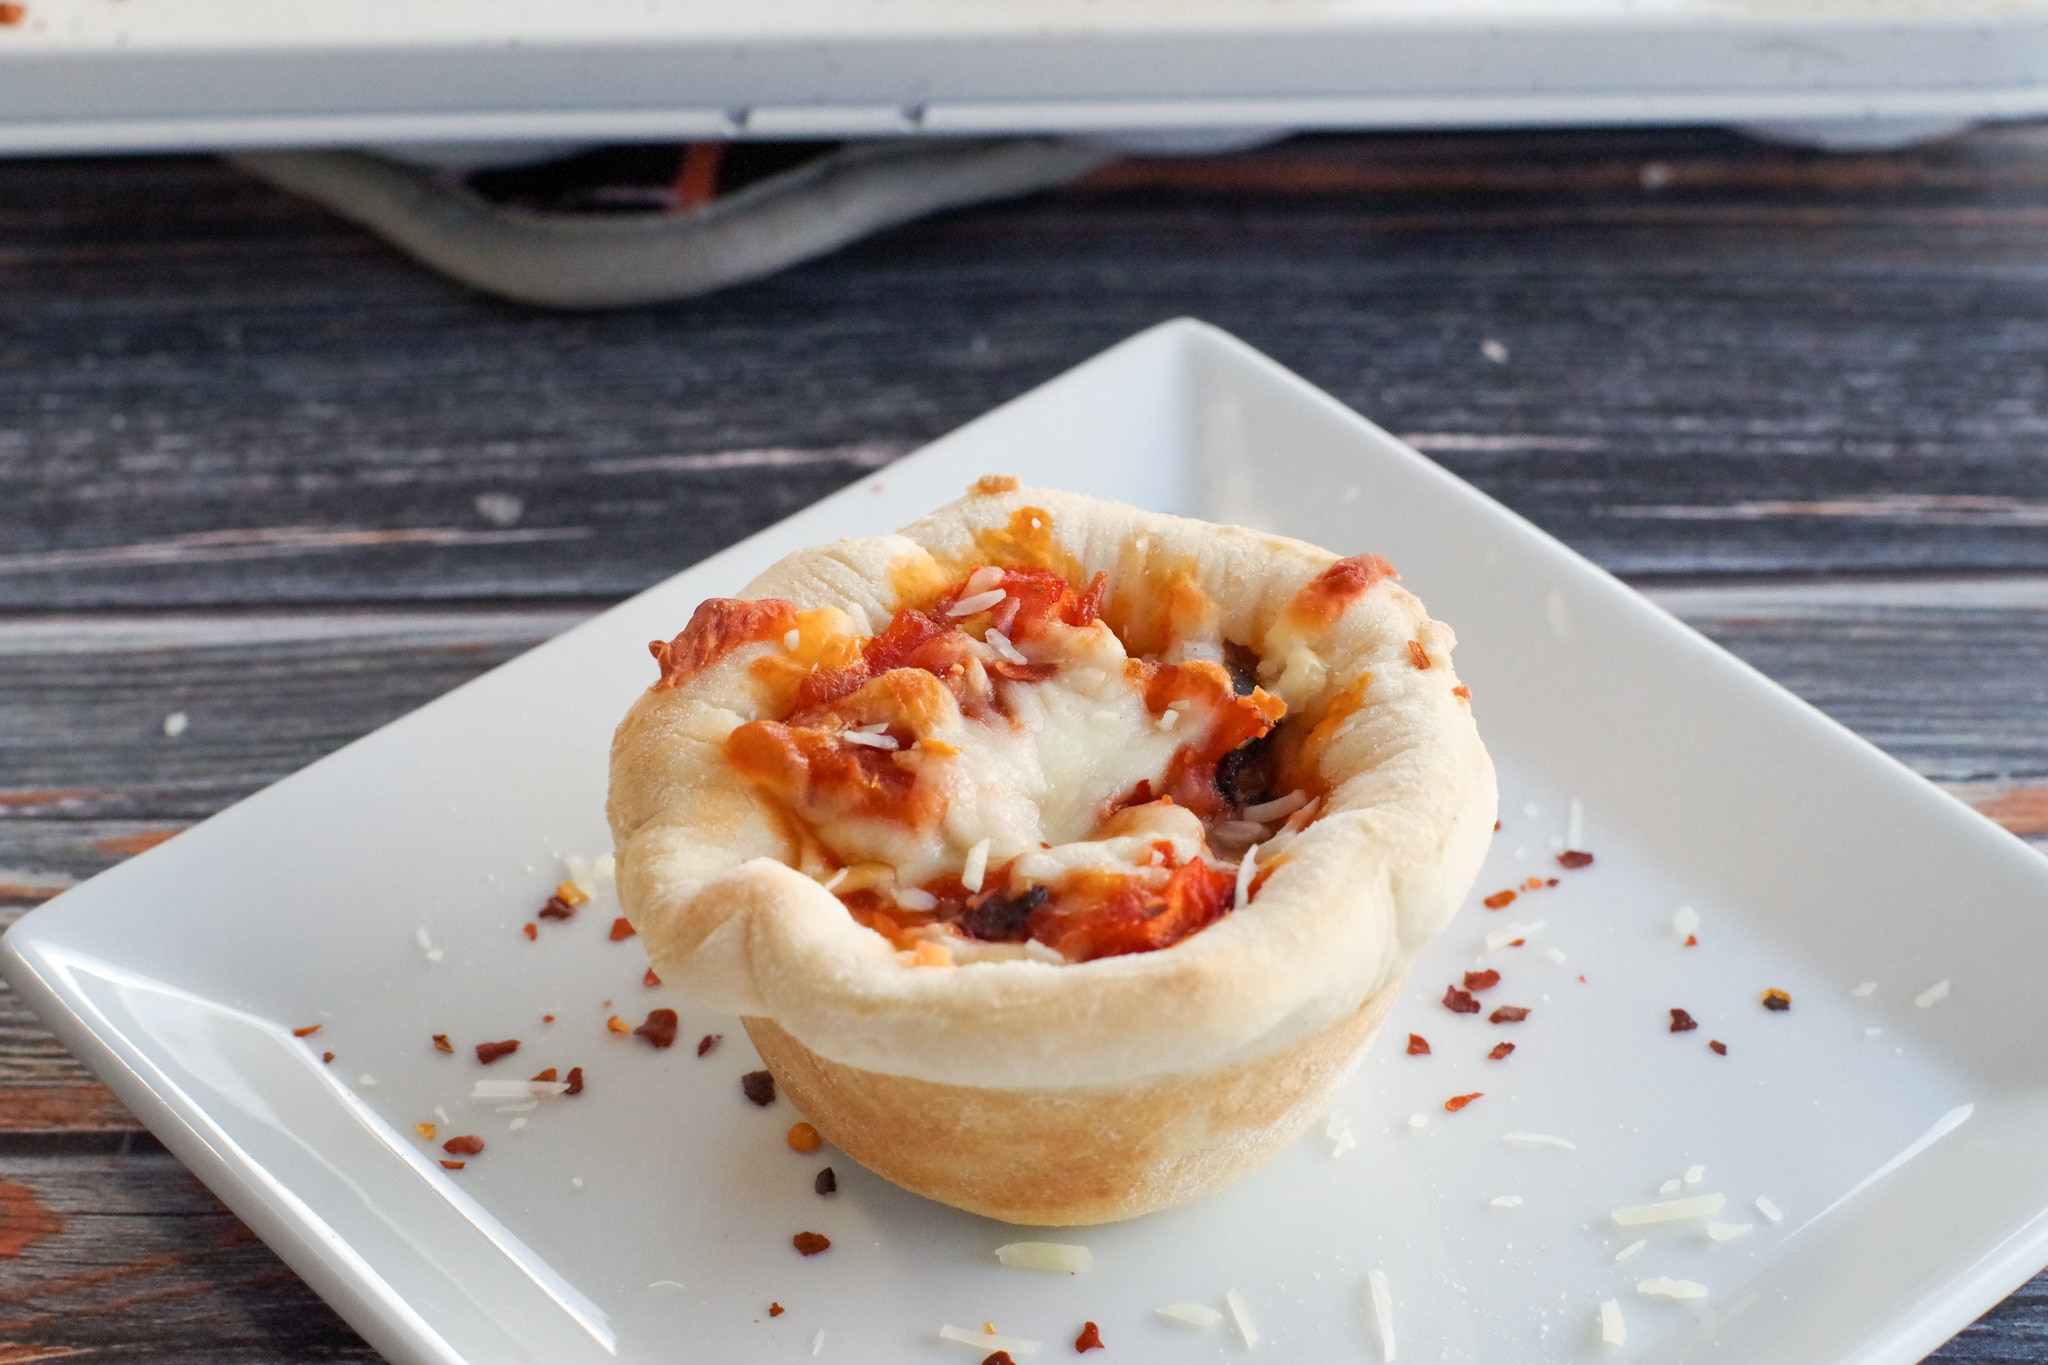 Pizza cupcake on a white plate with crushed red pepper and parmesan cheese sprinkles on plate